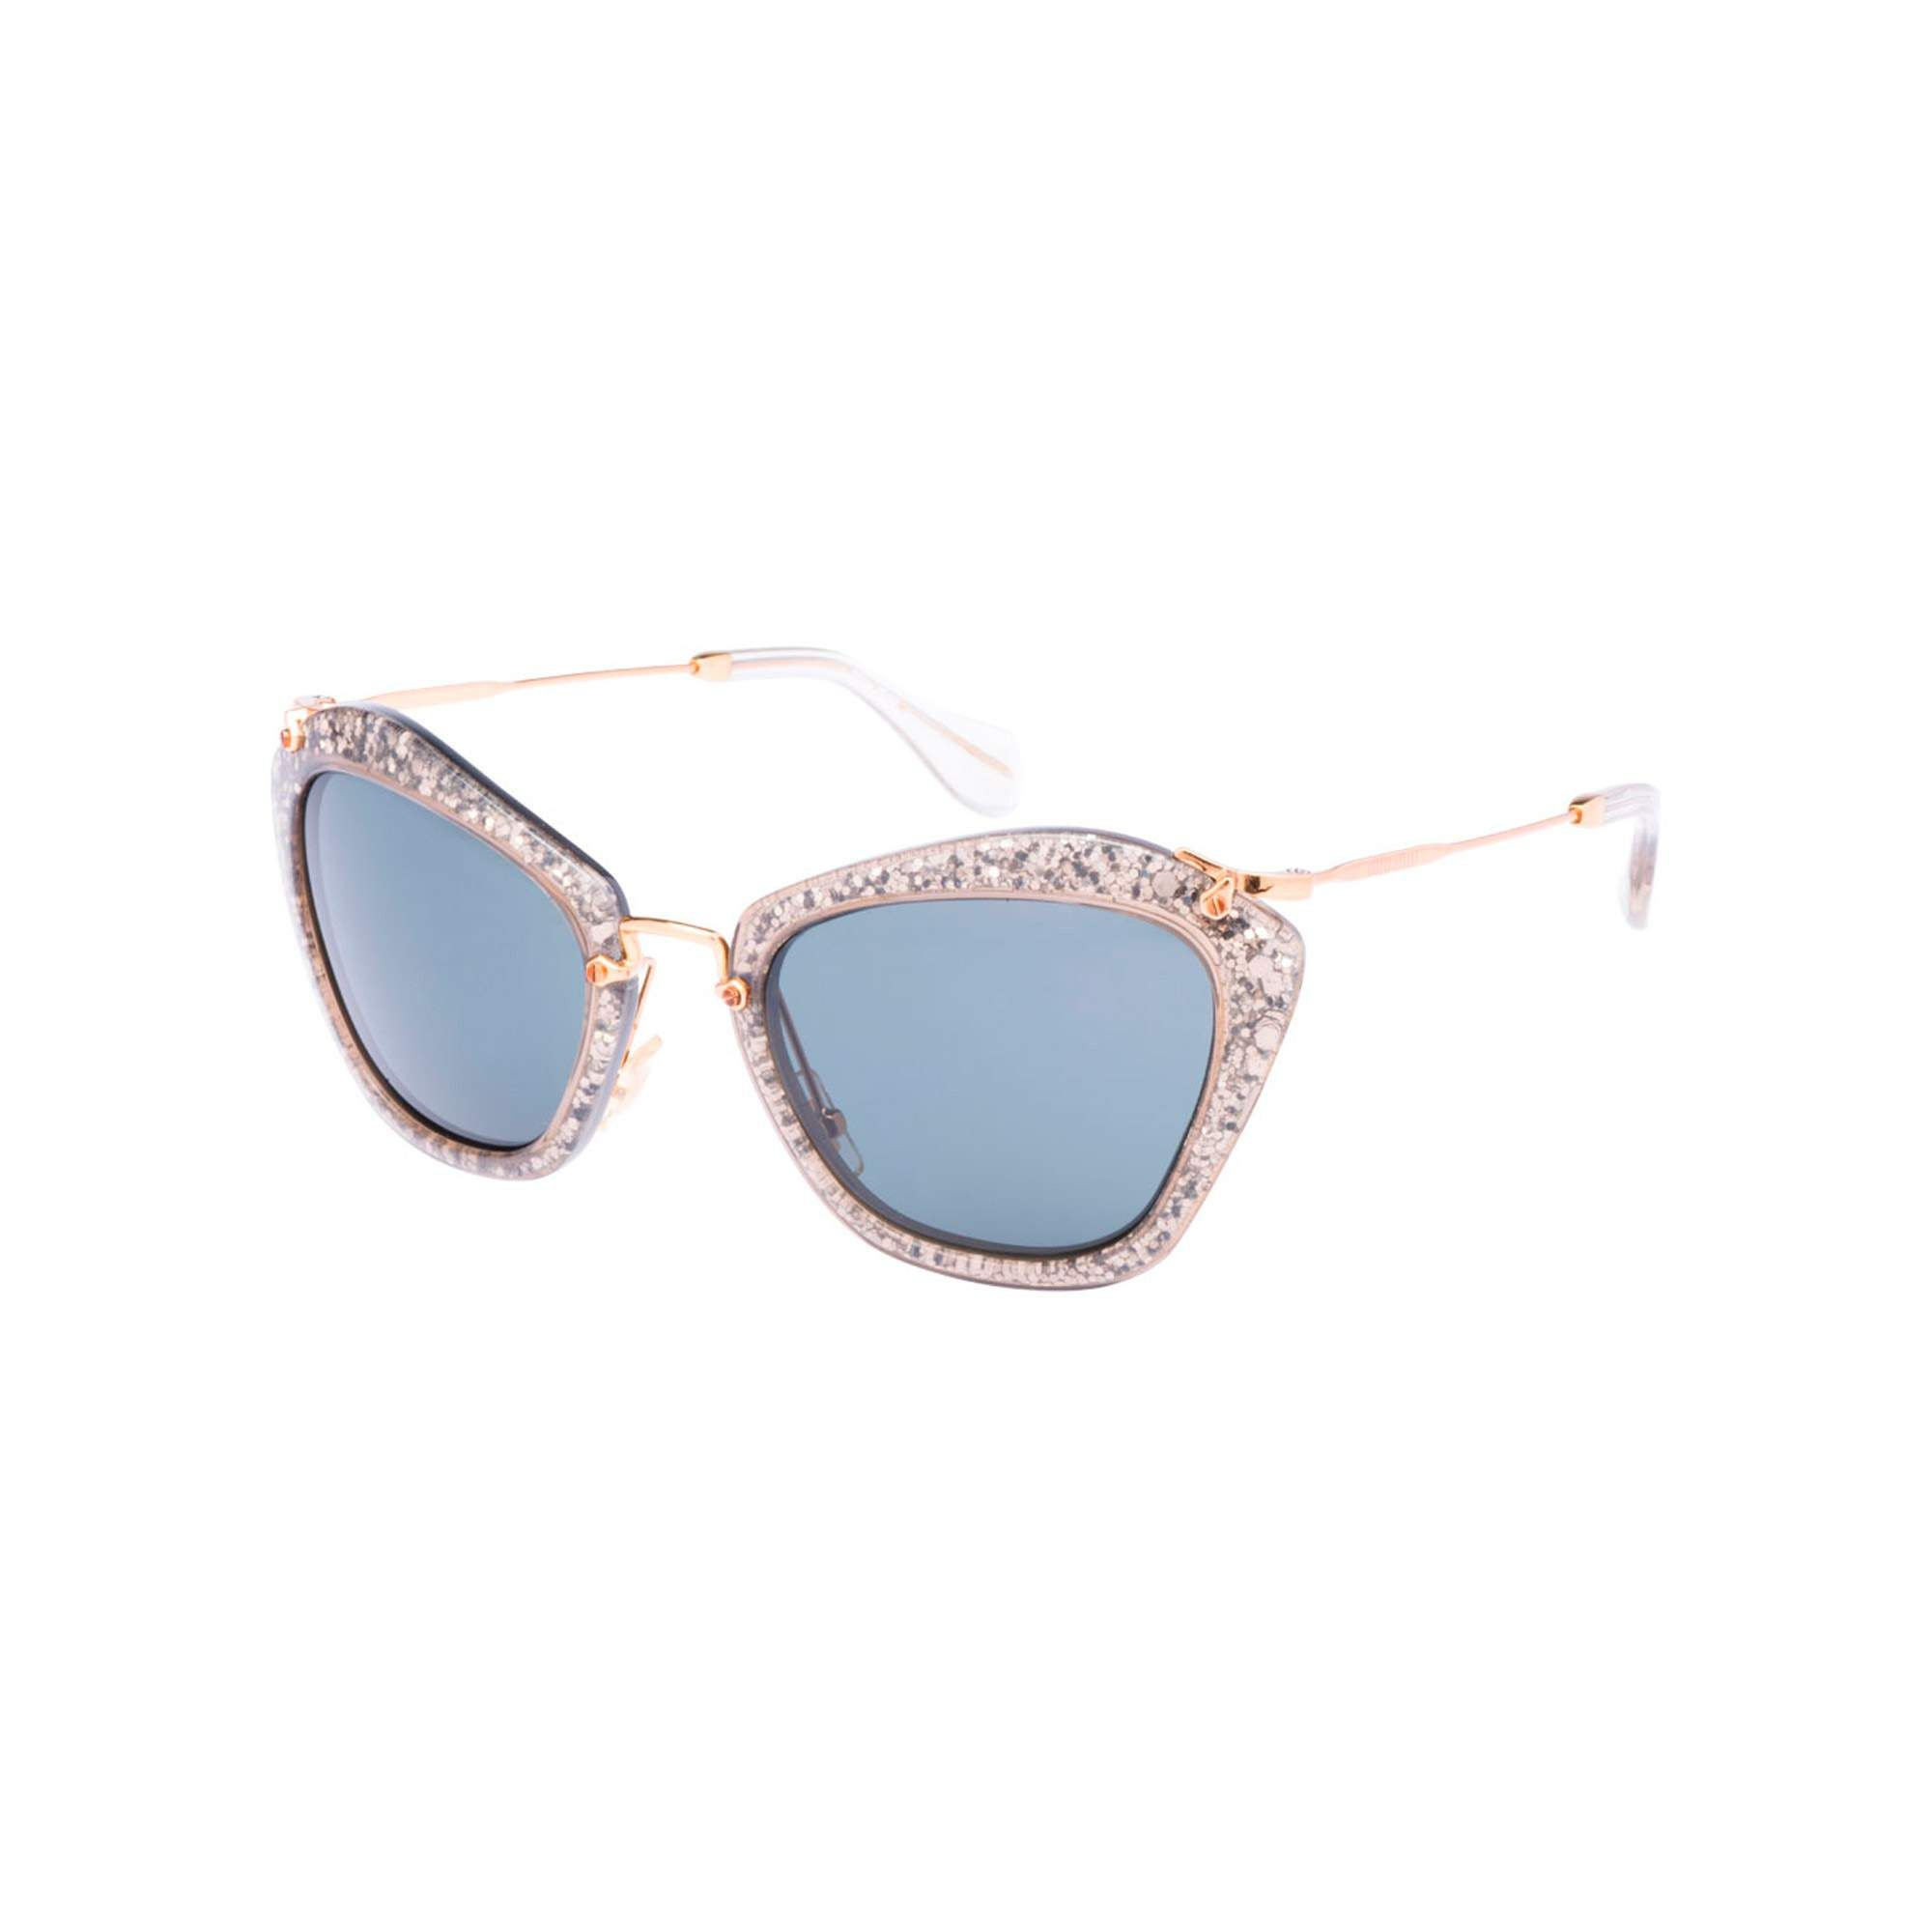 63bf702d3f1 Zoom-bootstrap   Lunettes   Pinterest   Miu miu, Eyewear and Website